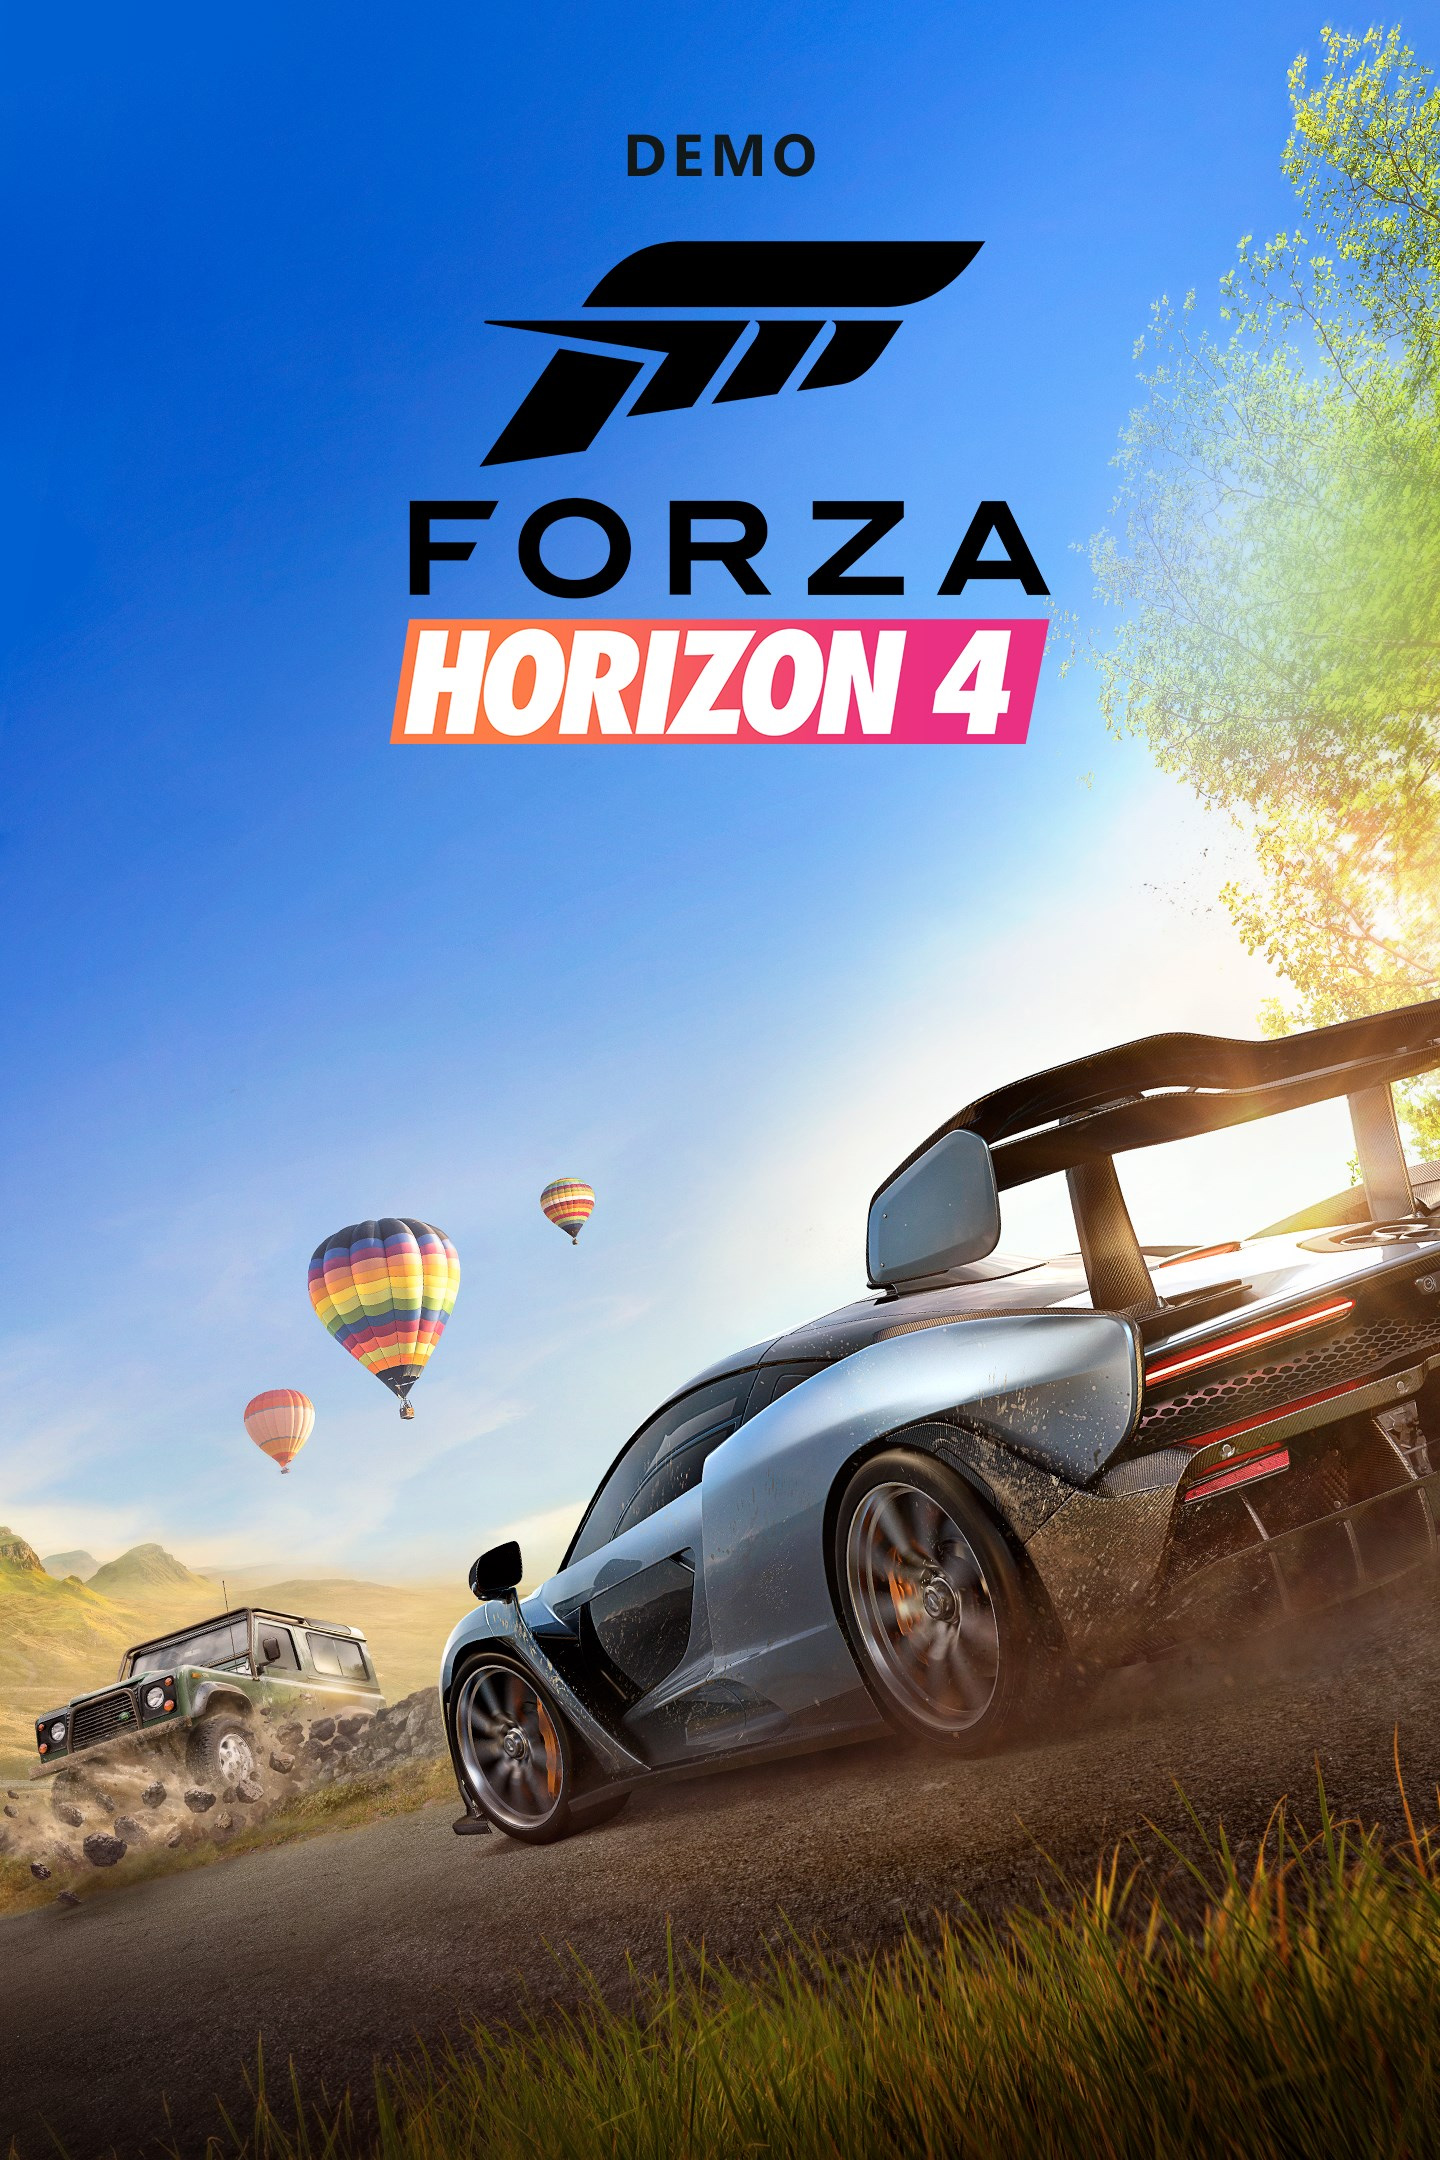 forza horizon 4 demo forza motorsport wiki fandom. Black Bedroom Furniture Sets. Home Design Ideas